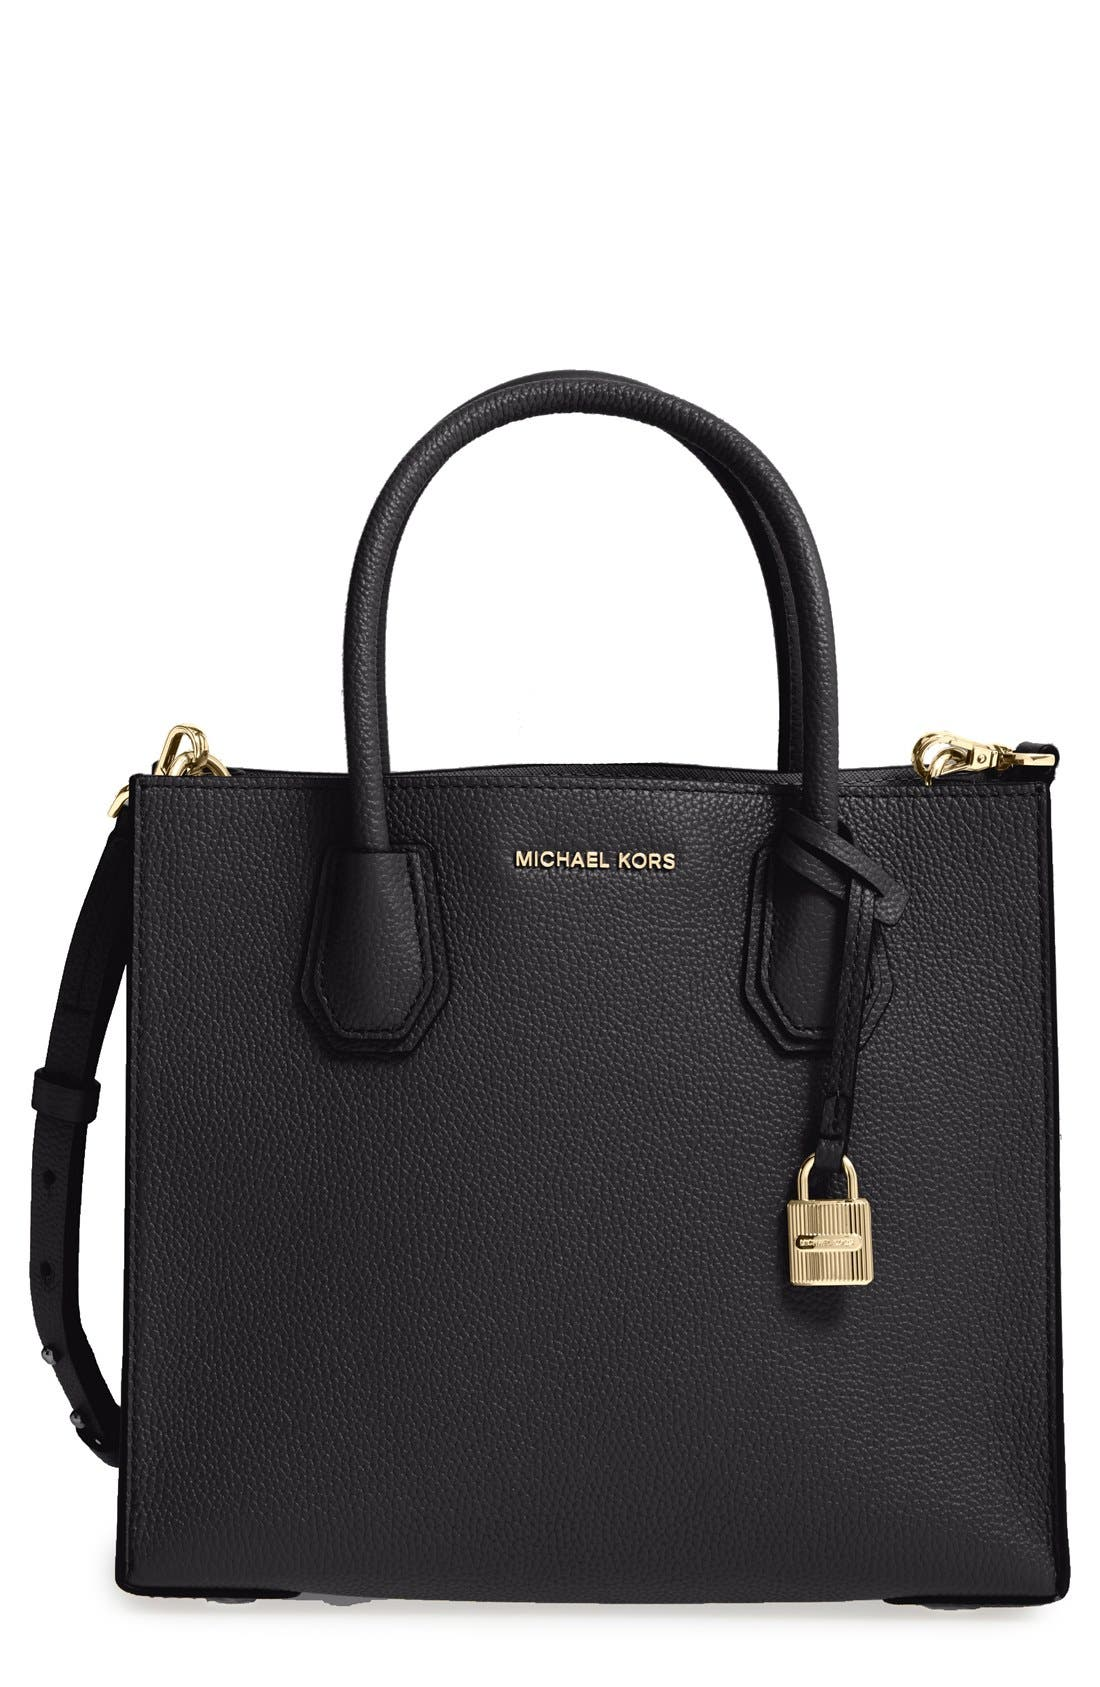 michael kors carine bag